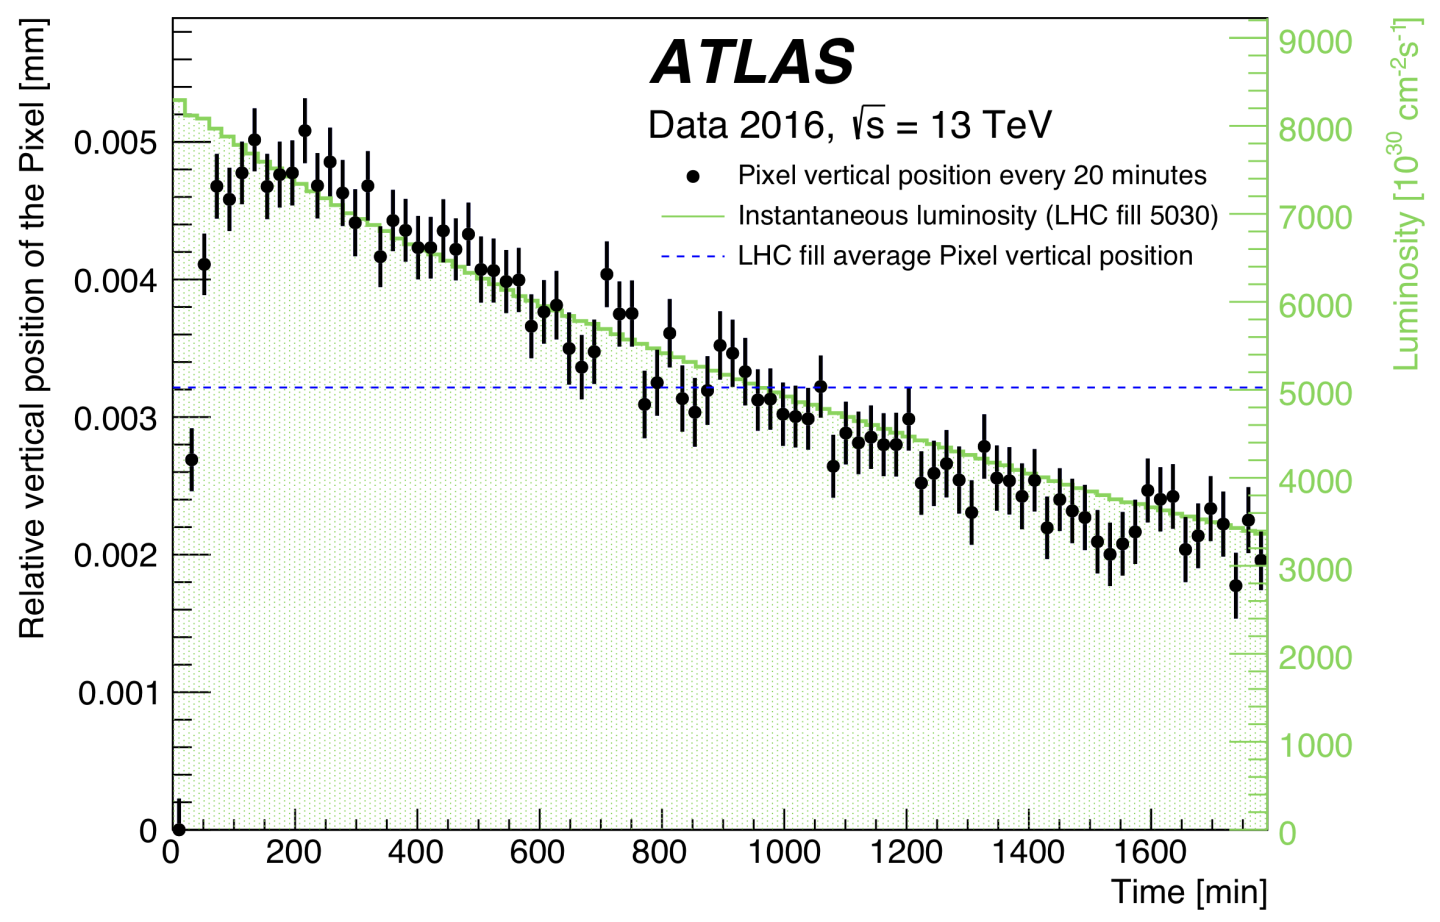 Inner Detector,Technology,Physics,Plots or Distributions,Detectors,ATLAS